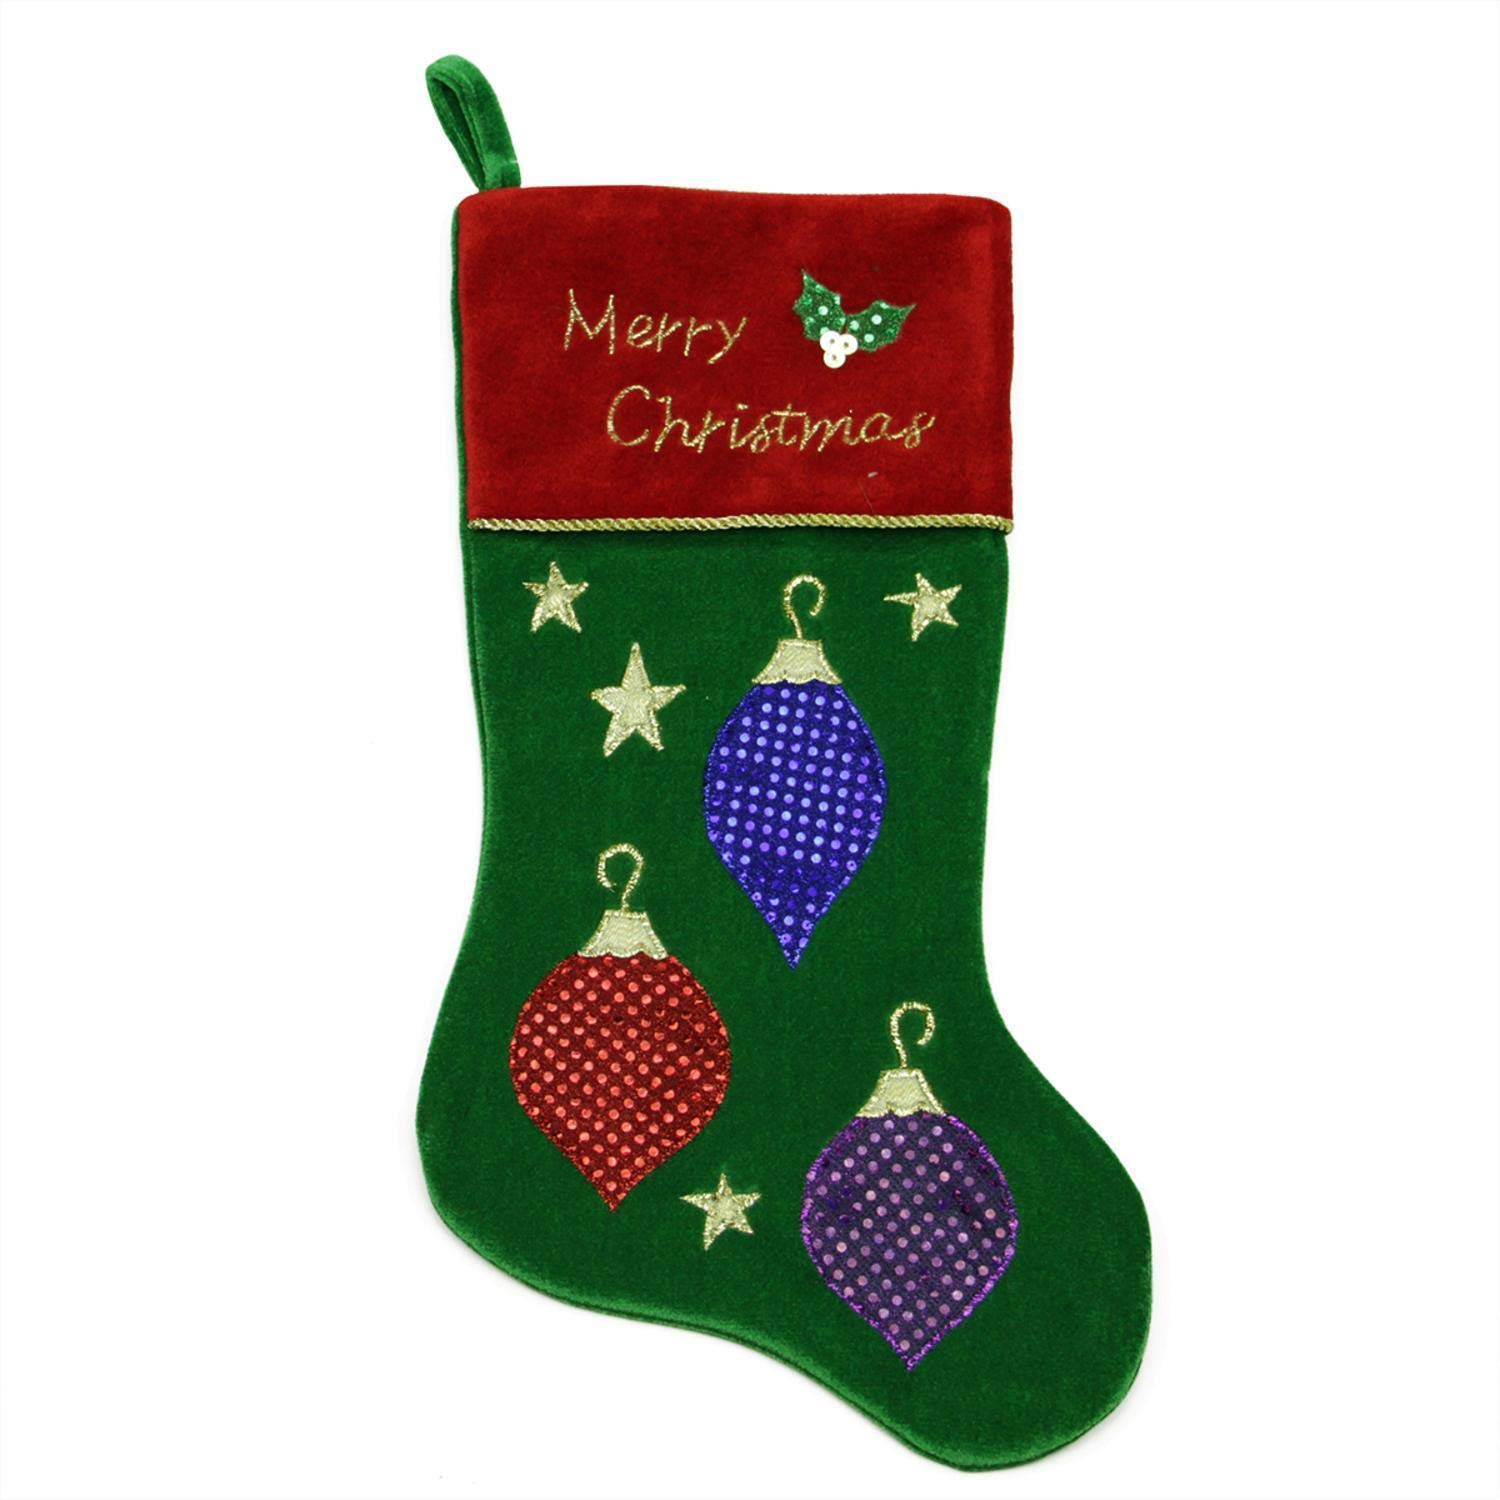 c68b8d9e670 Christmas Stocking Classic Green Embroidered Velveteen Traditional Elegant Xmas  Tree Stocking Solid Family Presents Stocking Red Cuff Christmas Ornament ...